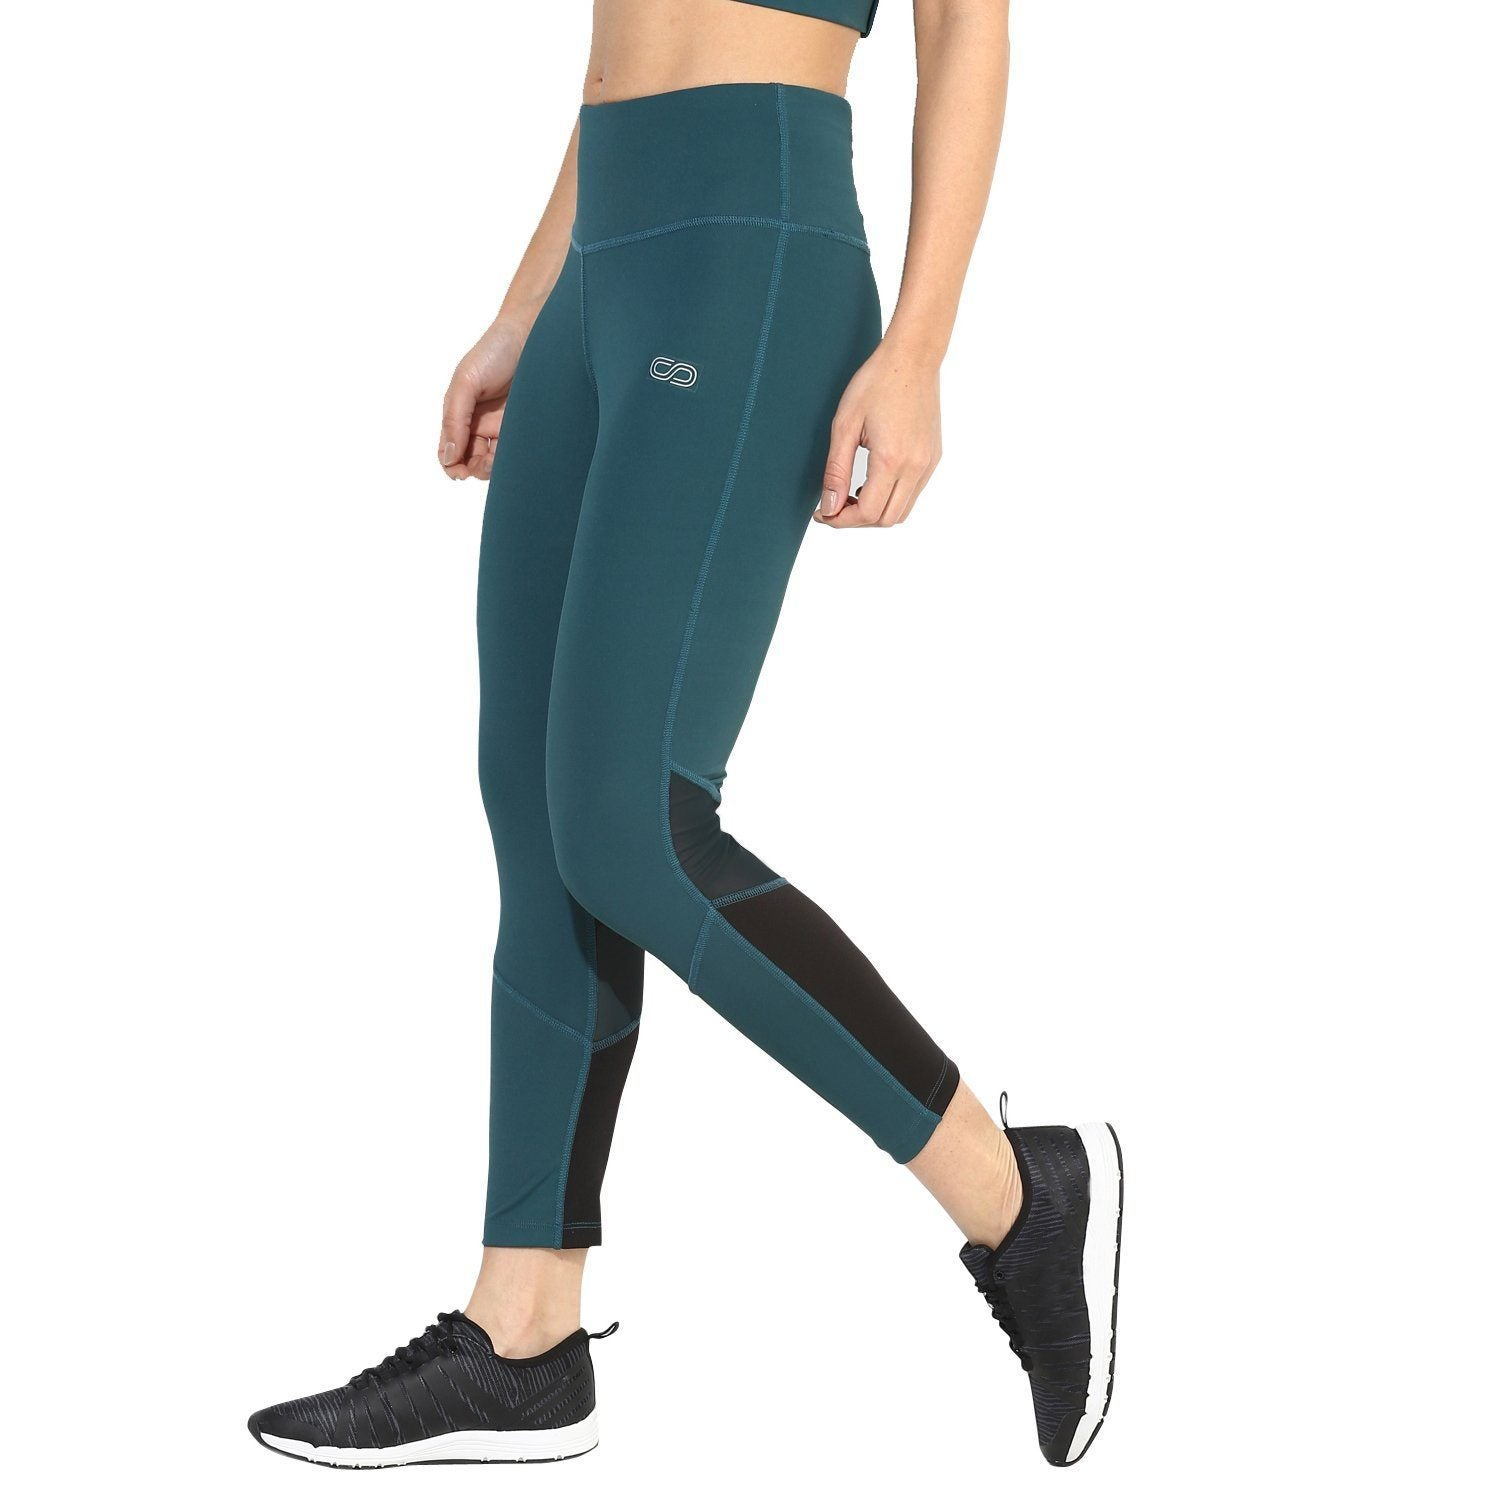 Ath Perform 7/8 High Waist Leggings